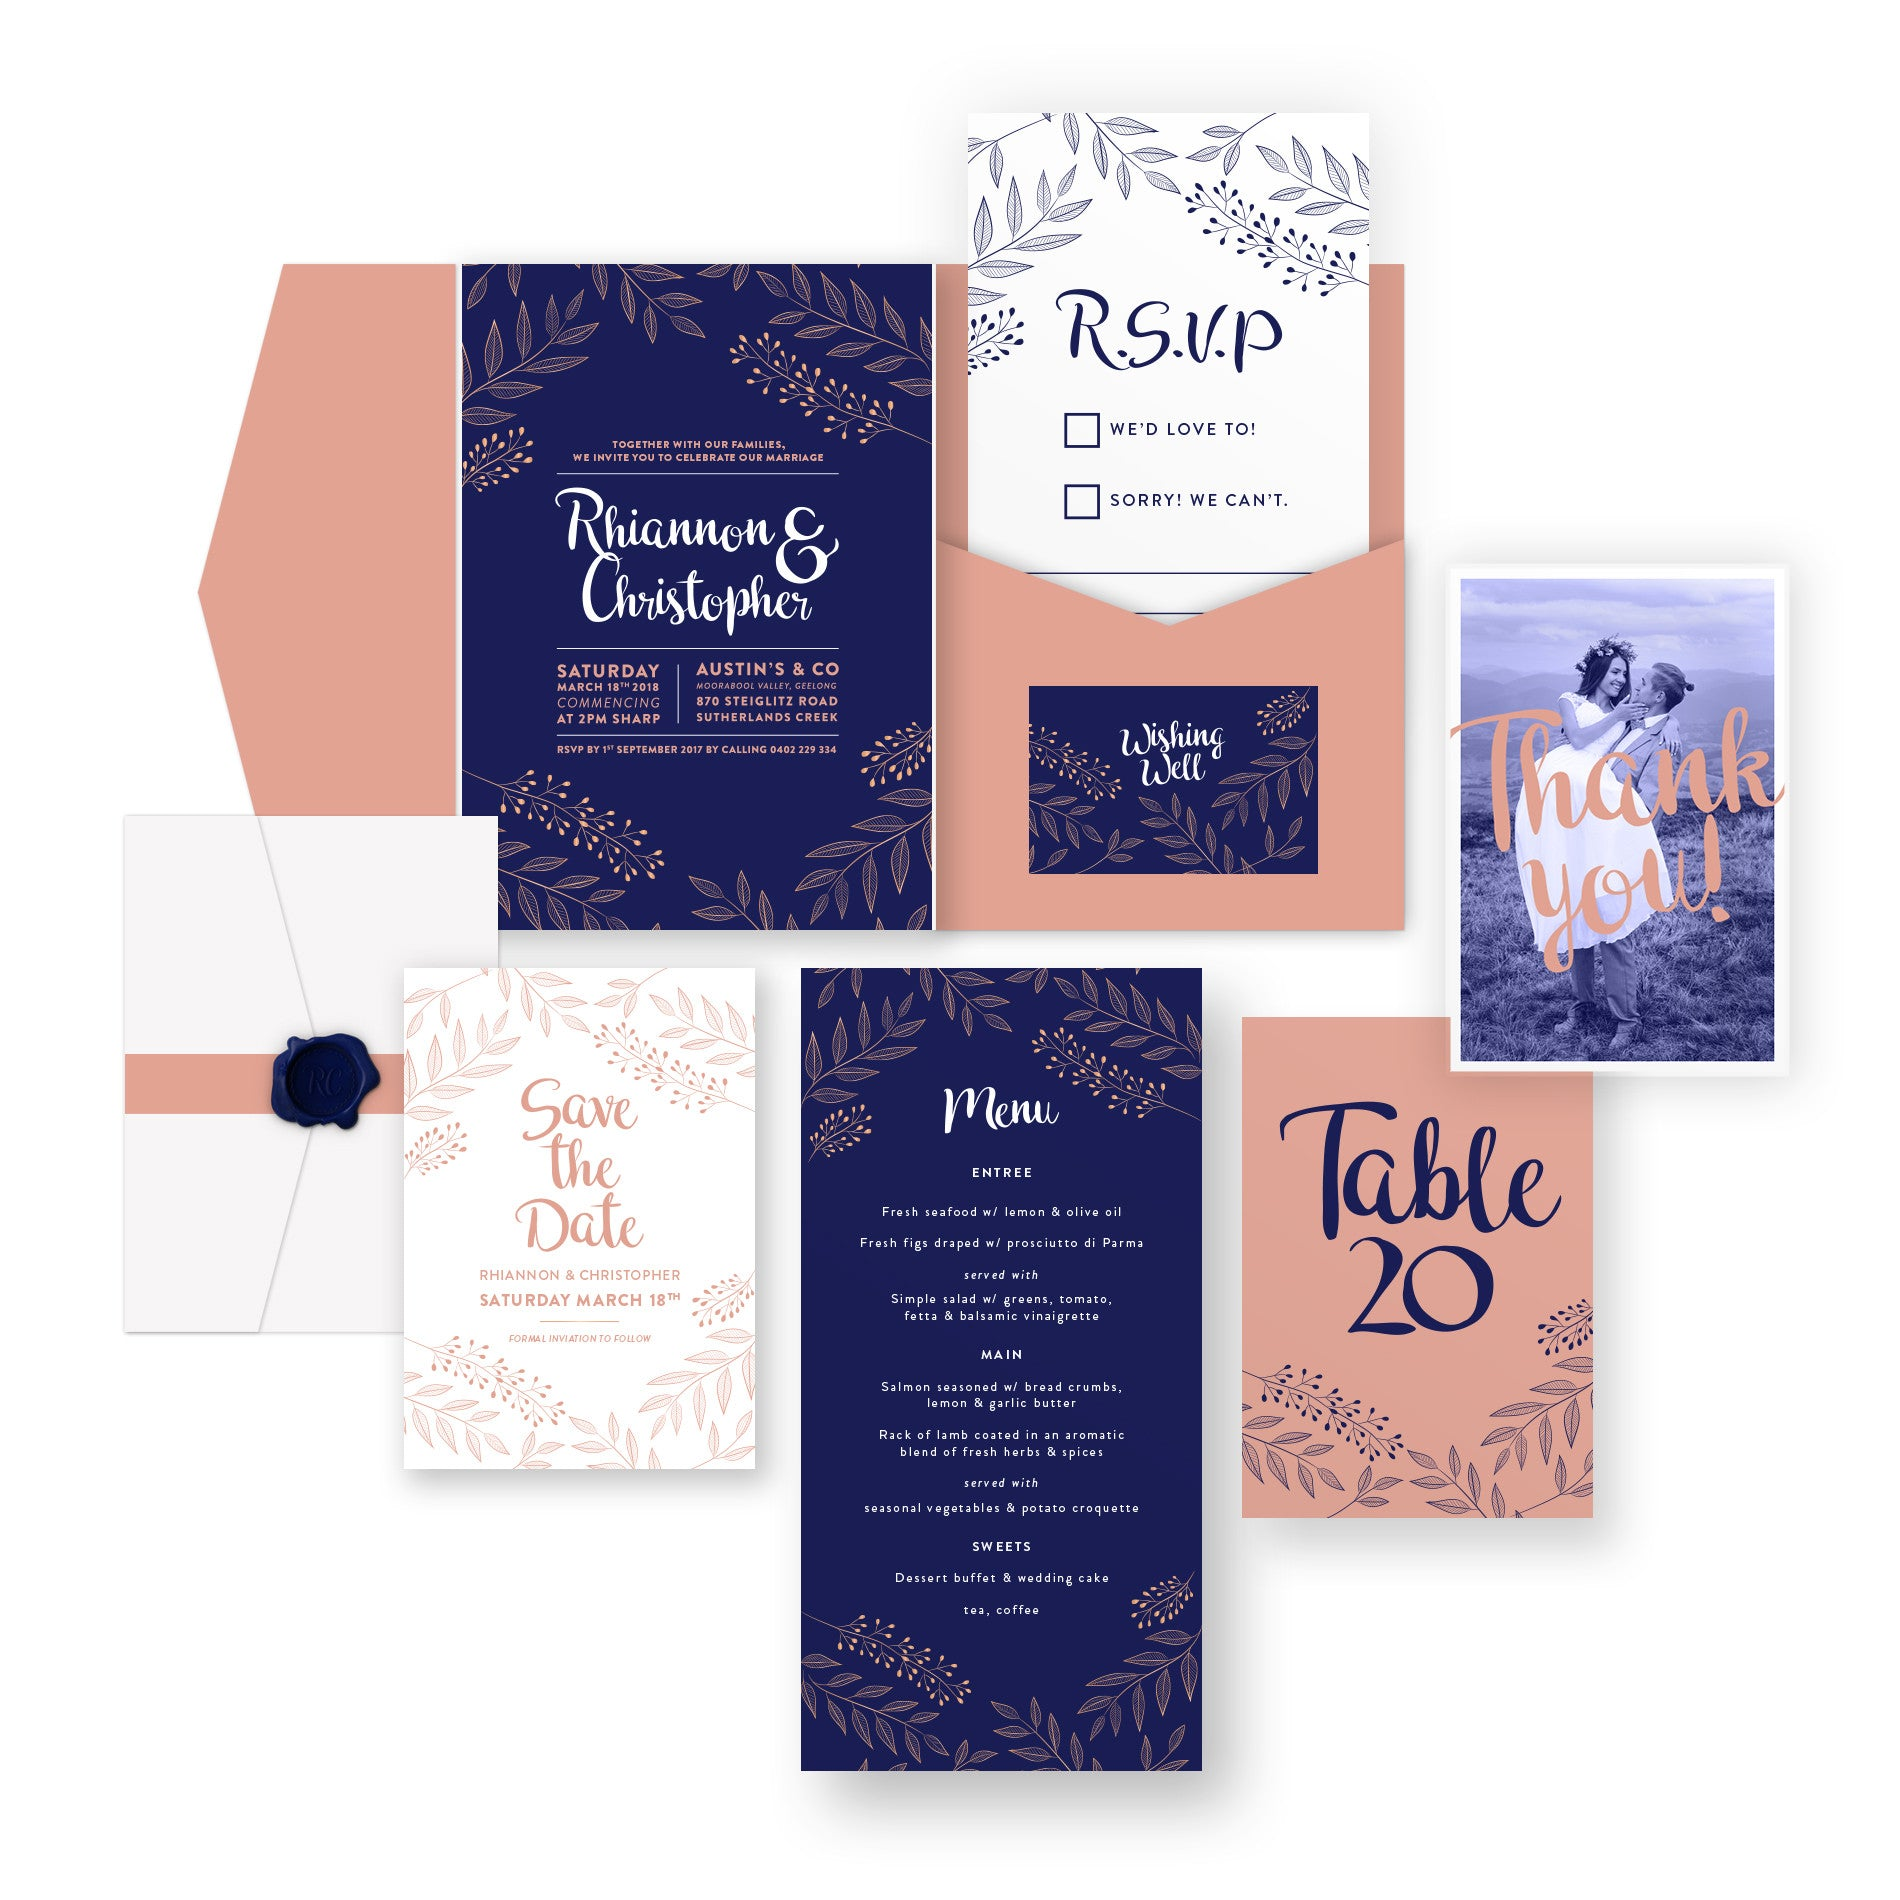 Limelight wedding stationery package bespokey doke limelight wedding stationery package junglespirit Choice Image